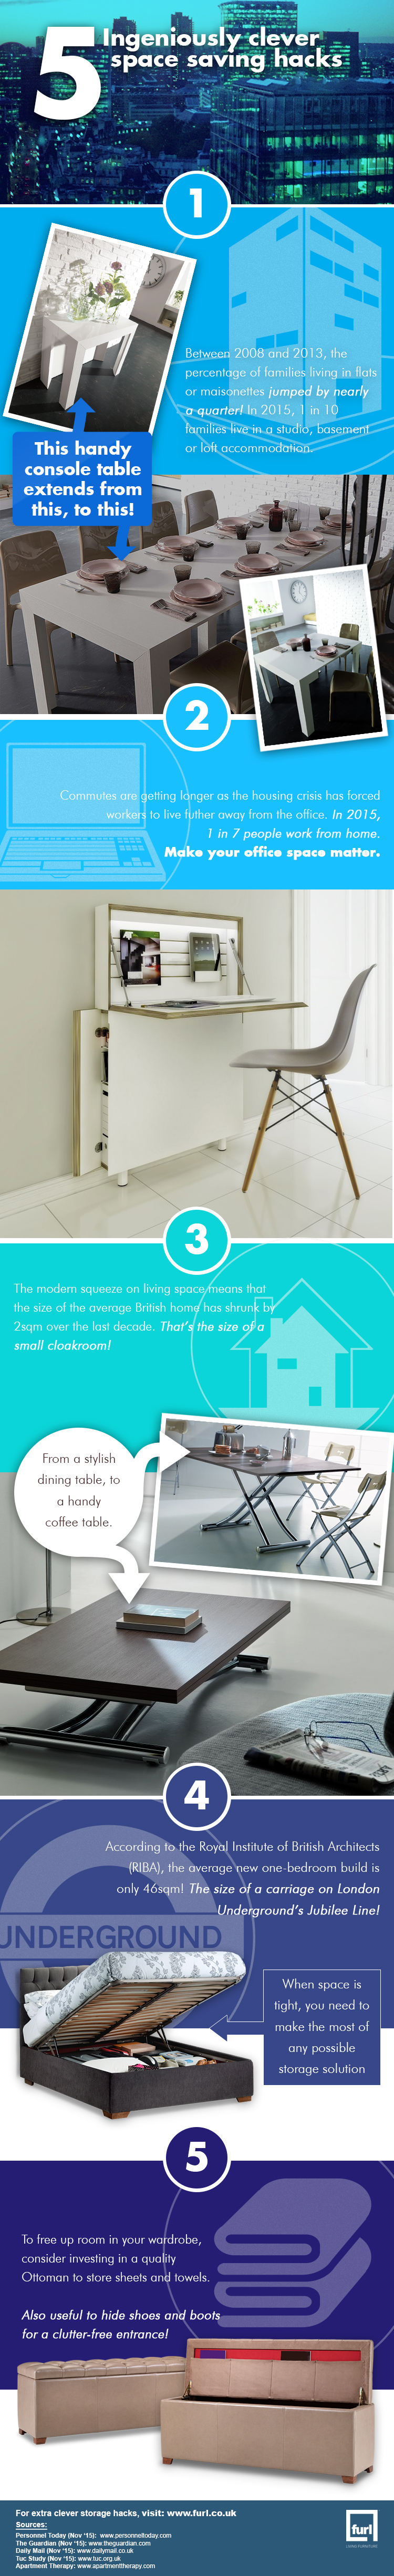 5 Ingeniously Clever Space Saving Hacks